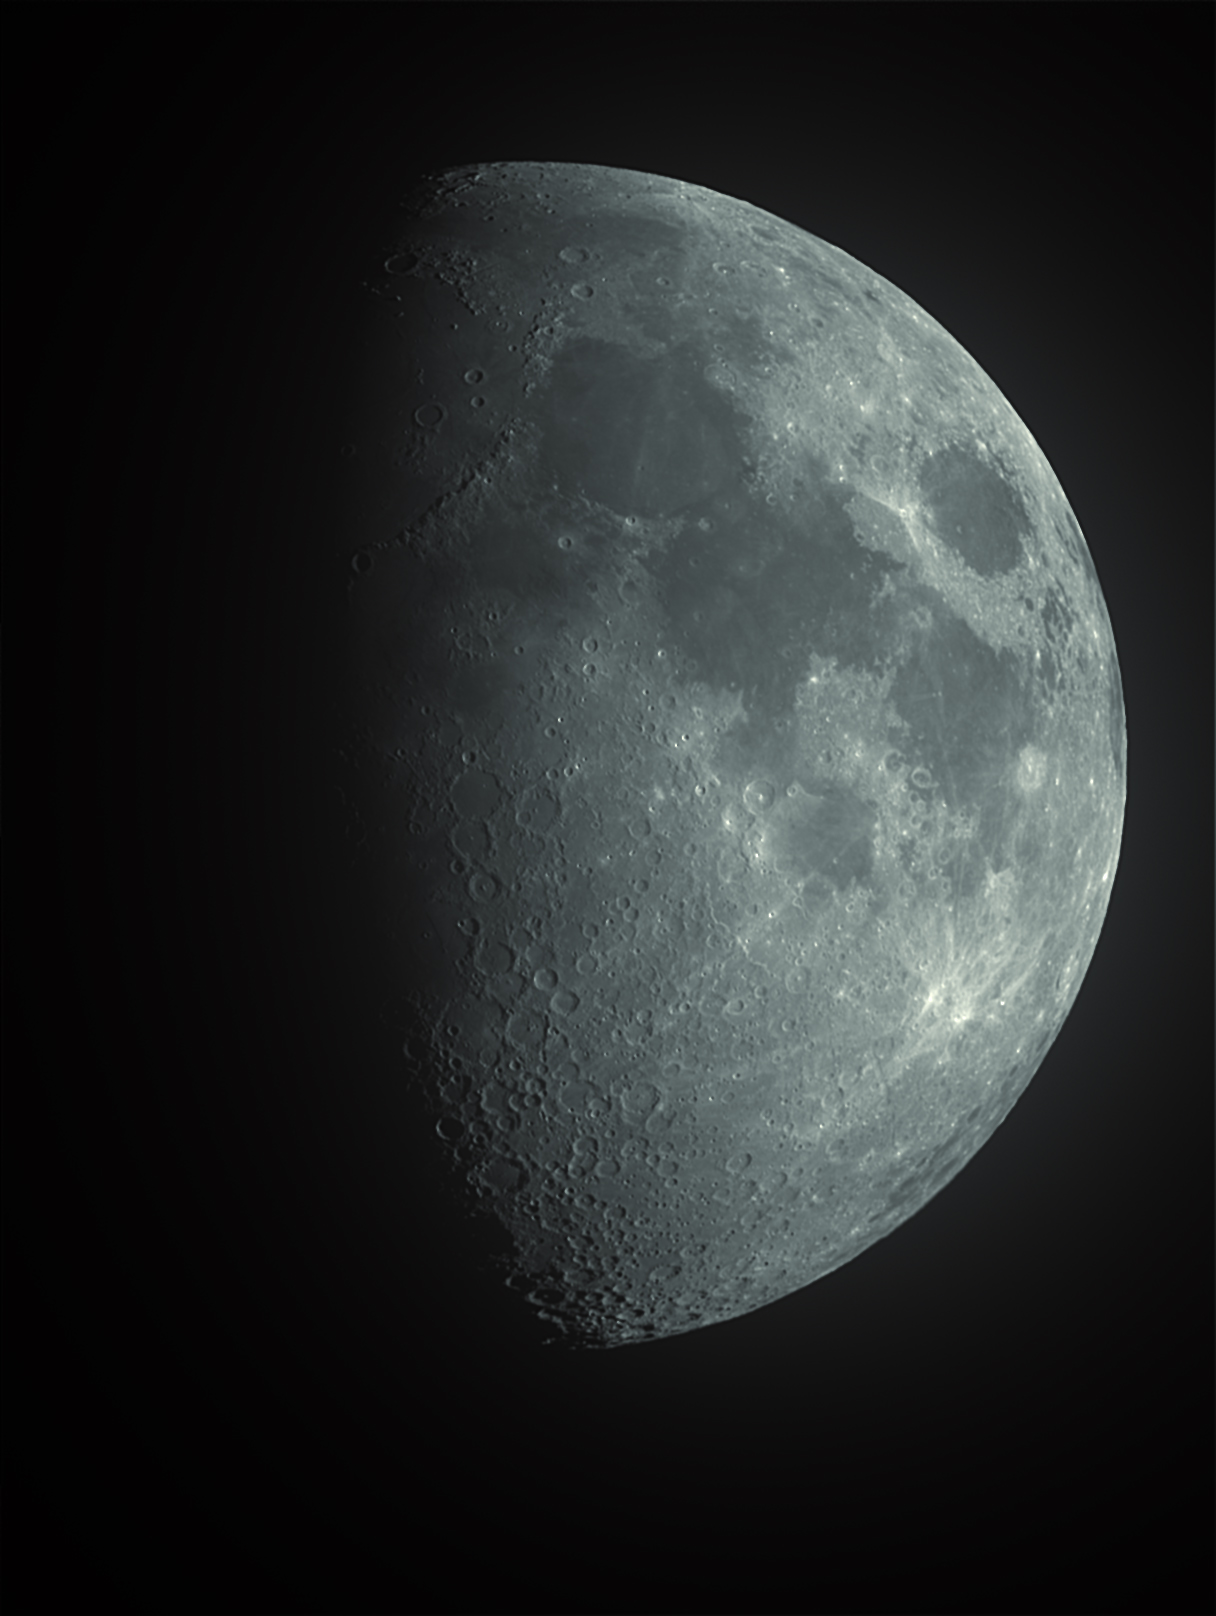 Who and how discovered the moon 93